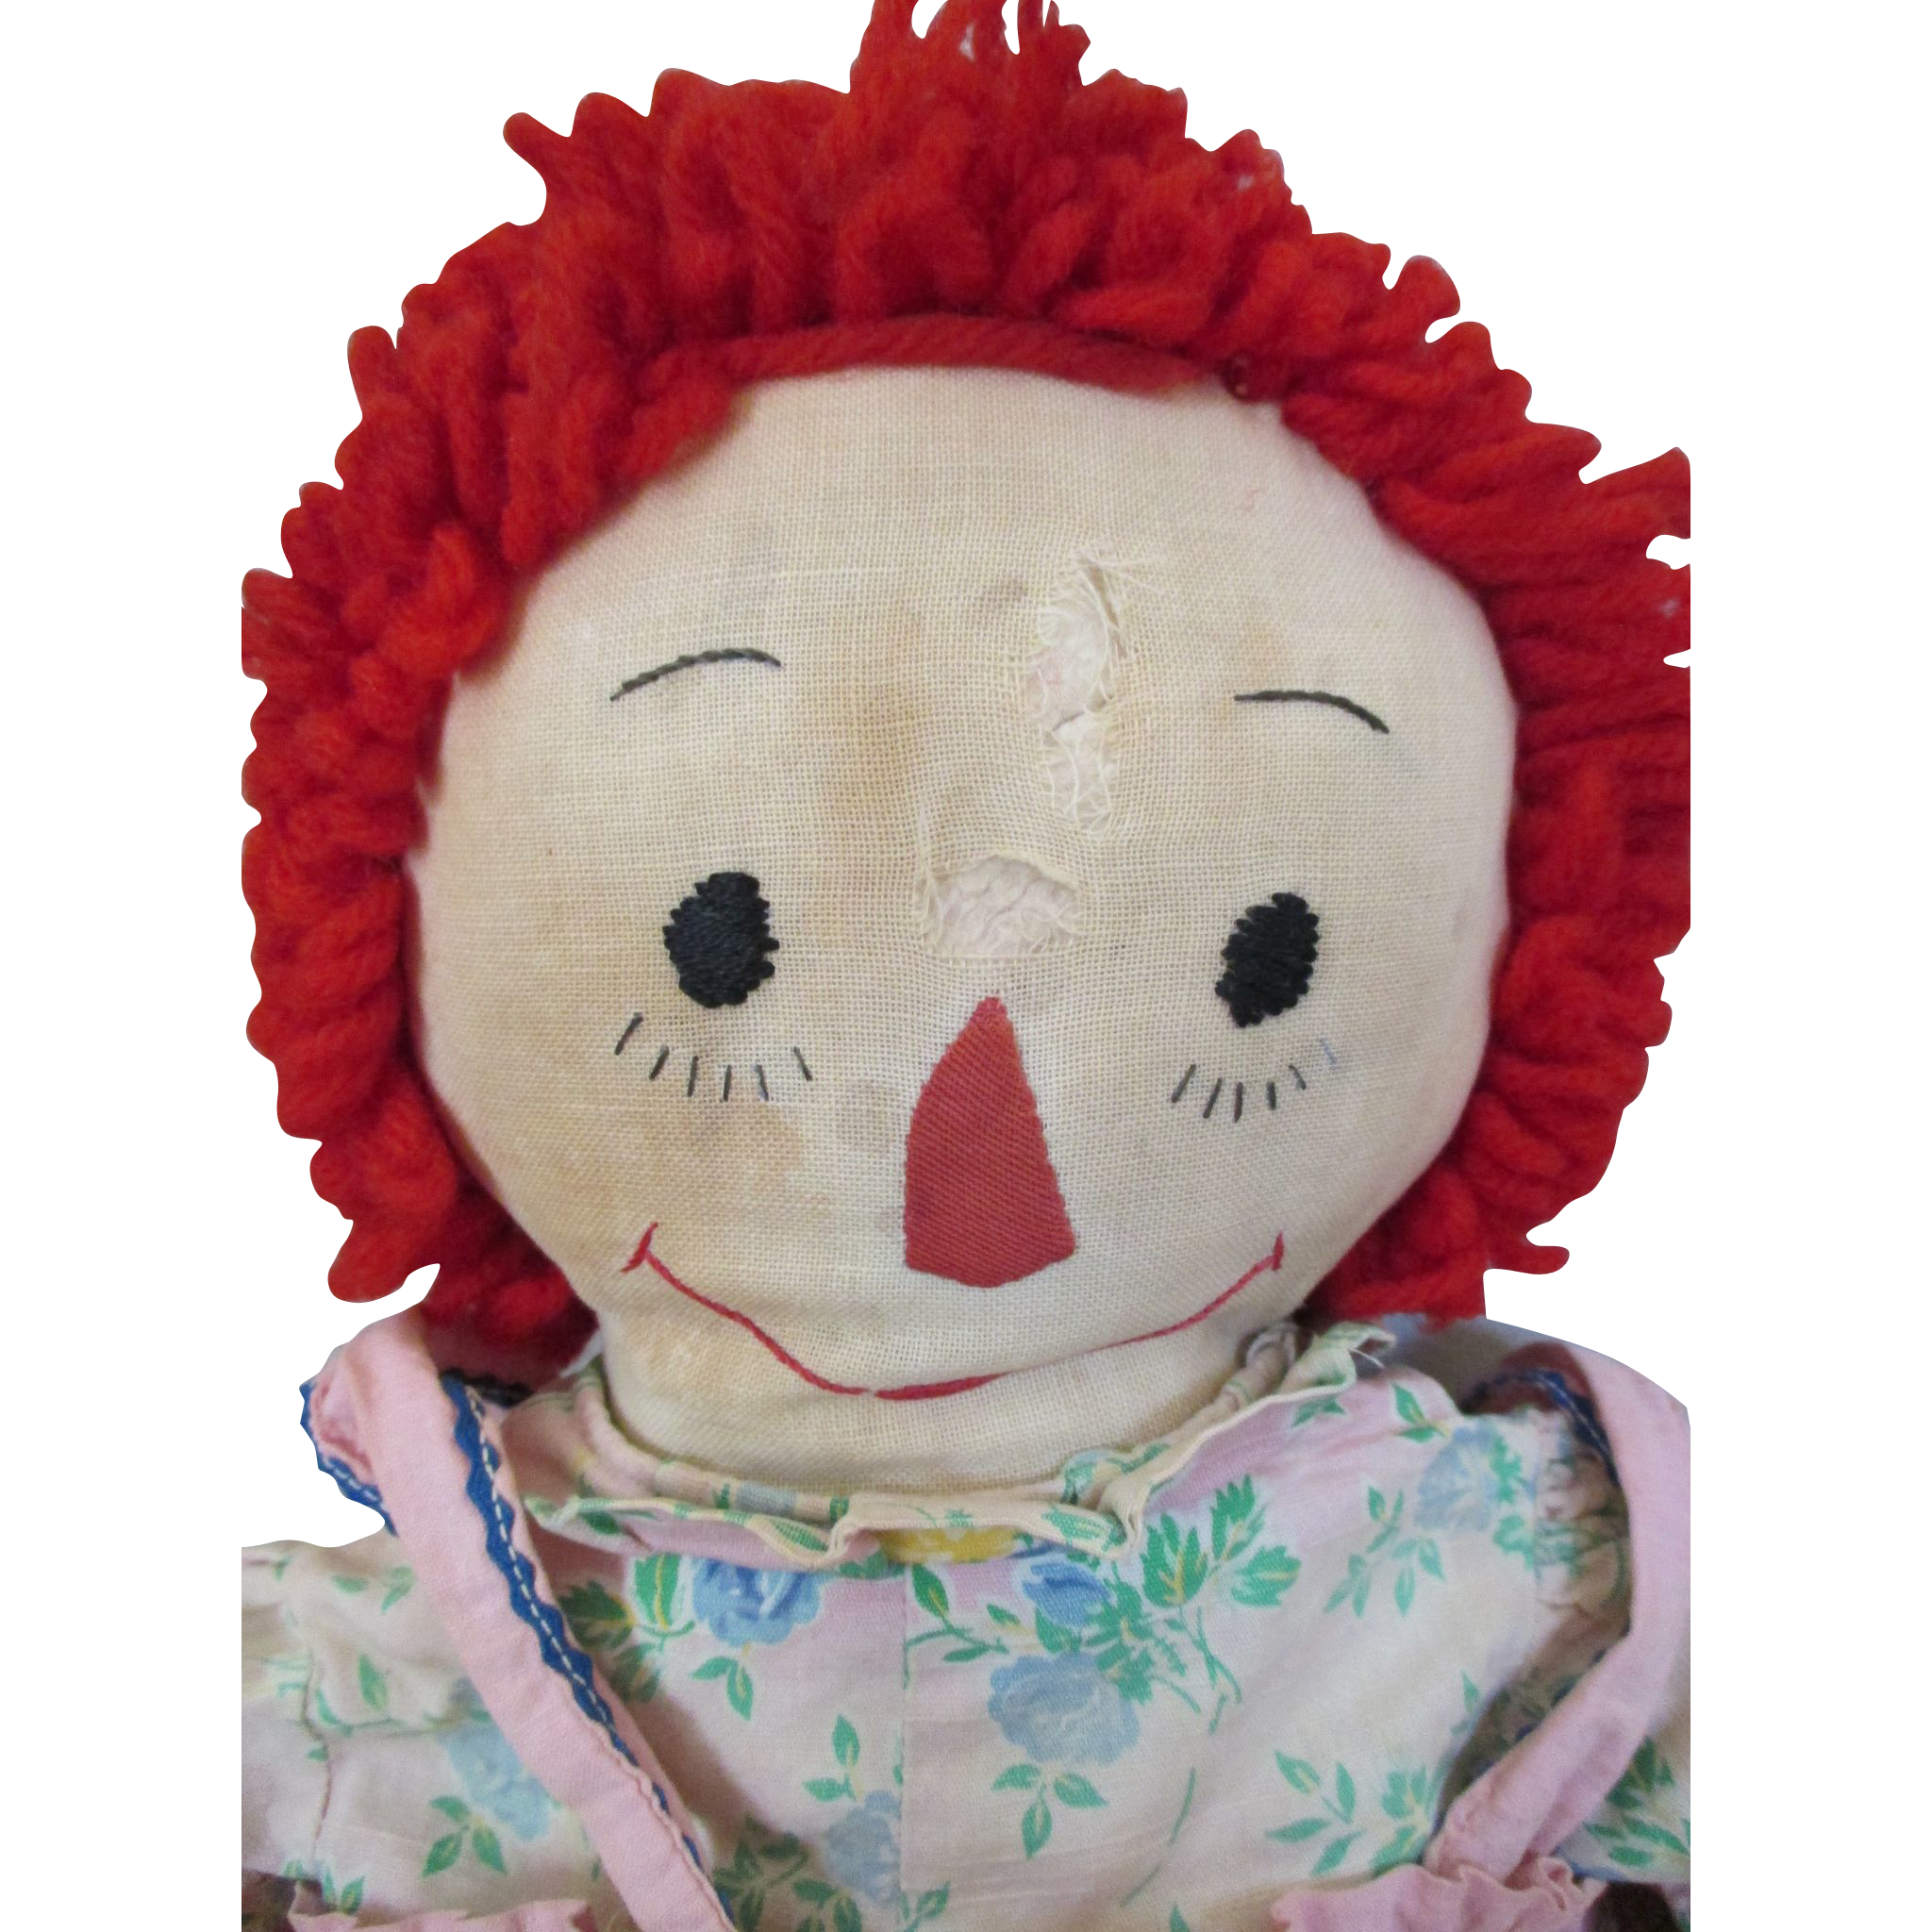 Antique Raggedy Ann Doll with Embroidered Facial Features